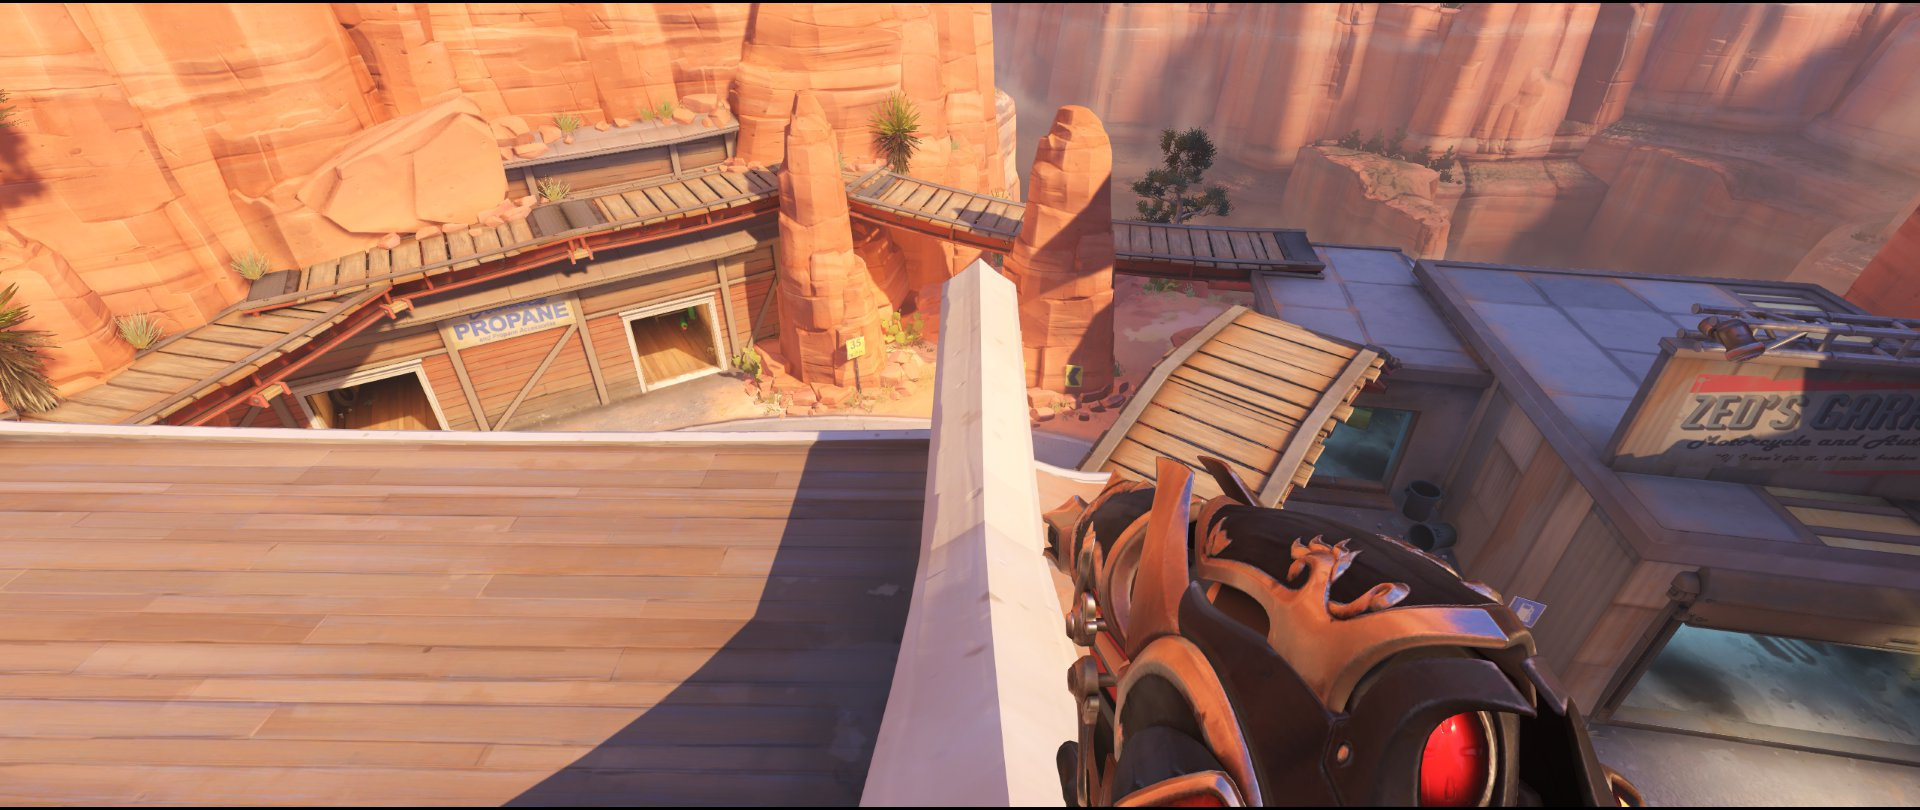 Pub view two attack sniping spot Widowmaker Route 66.jpg